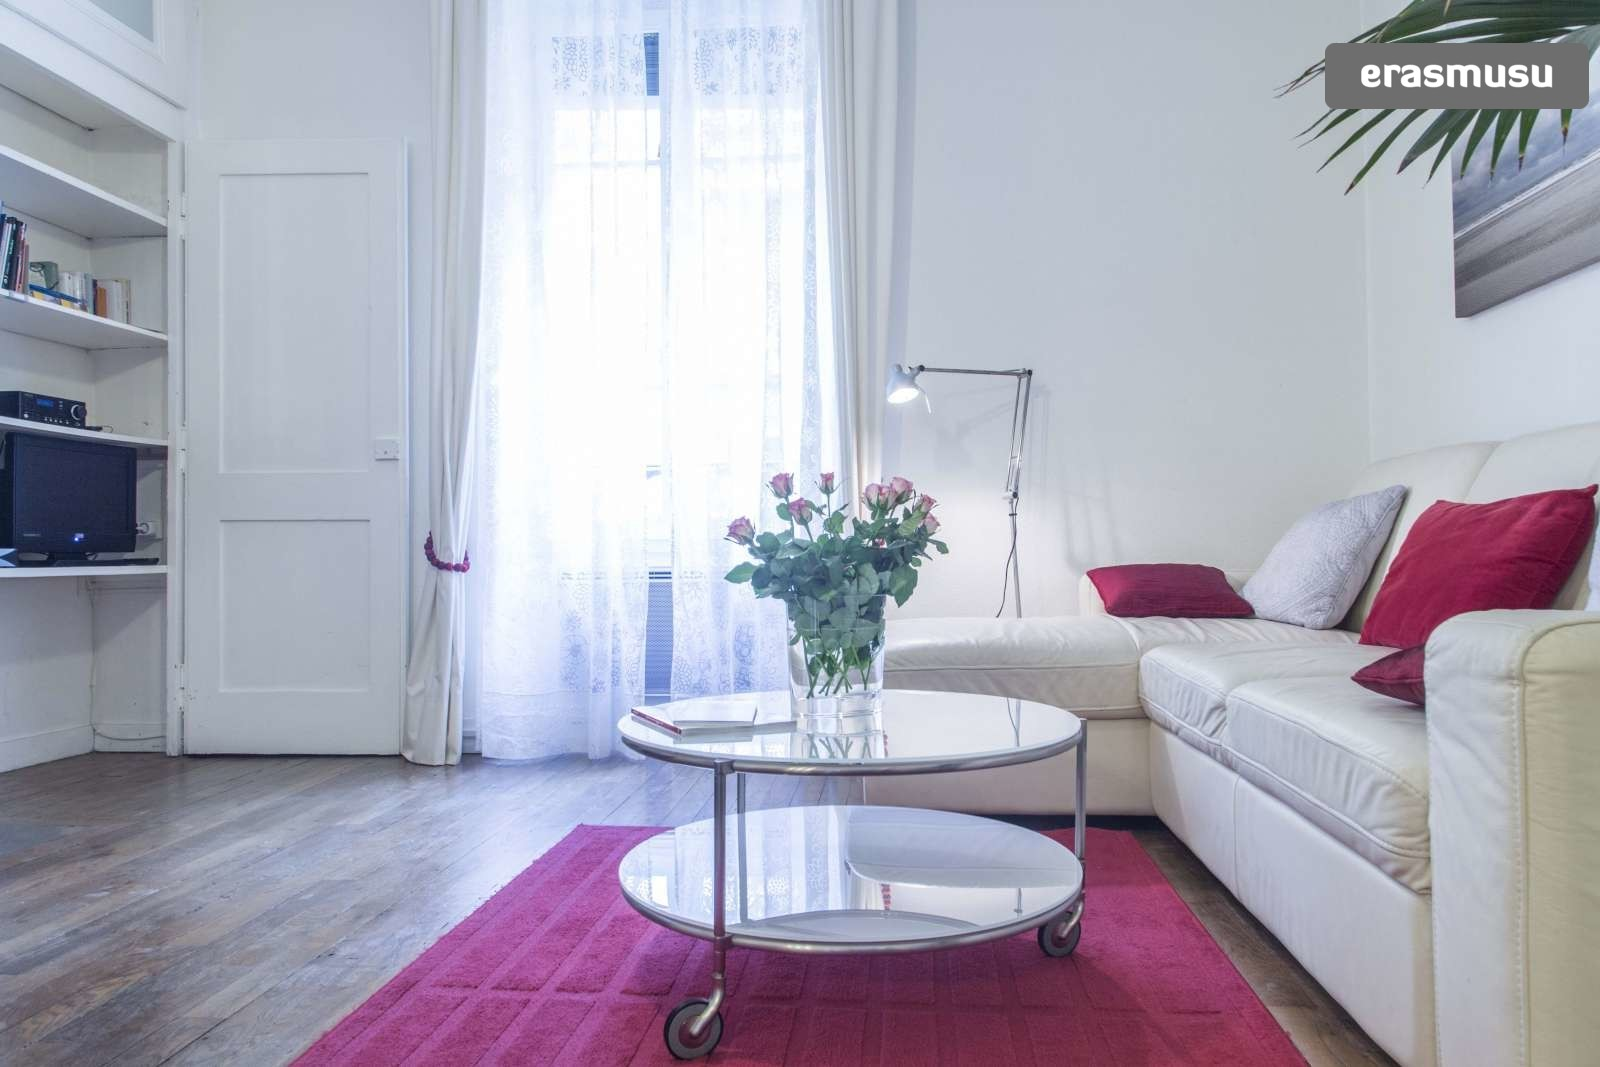 modern-luxurious-studio-apartment-rent-lyon-b3292f3b1a187f1b48ec